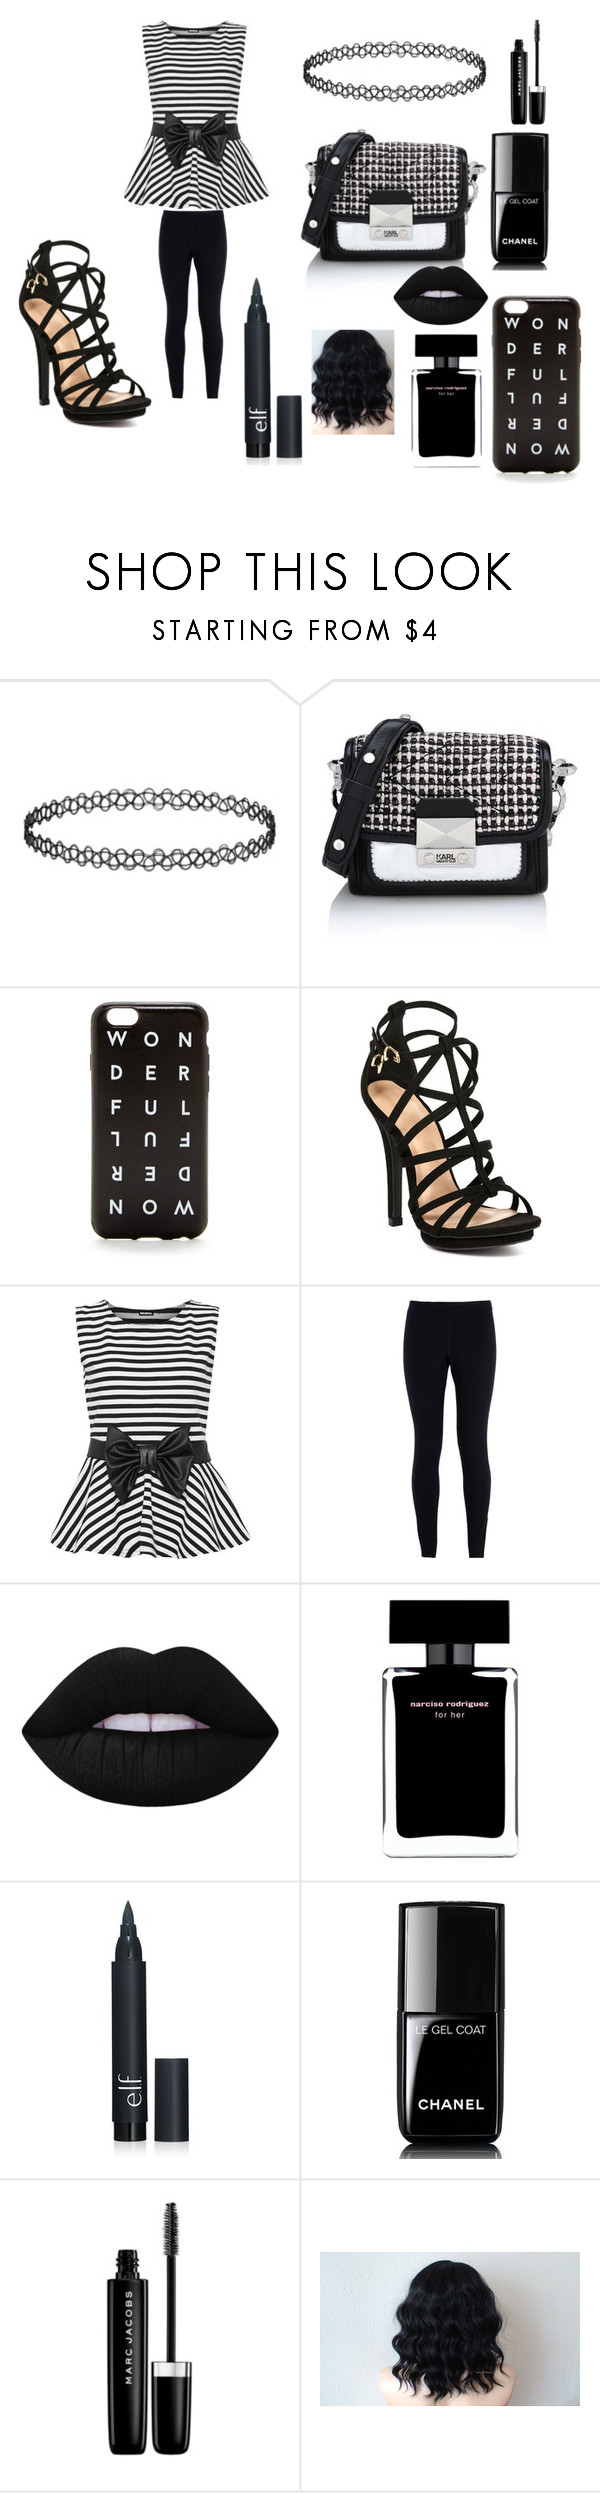 """""""Jackie  Skellington"""" by maddie-hatter23 ❤ liked on Polyvore featuring мода, Karl Lagerfeld, J.Crew, WearAll, NIKE, Lime Crime, Narciso Rodriguez, Chanel и Marc Jacobs"""